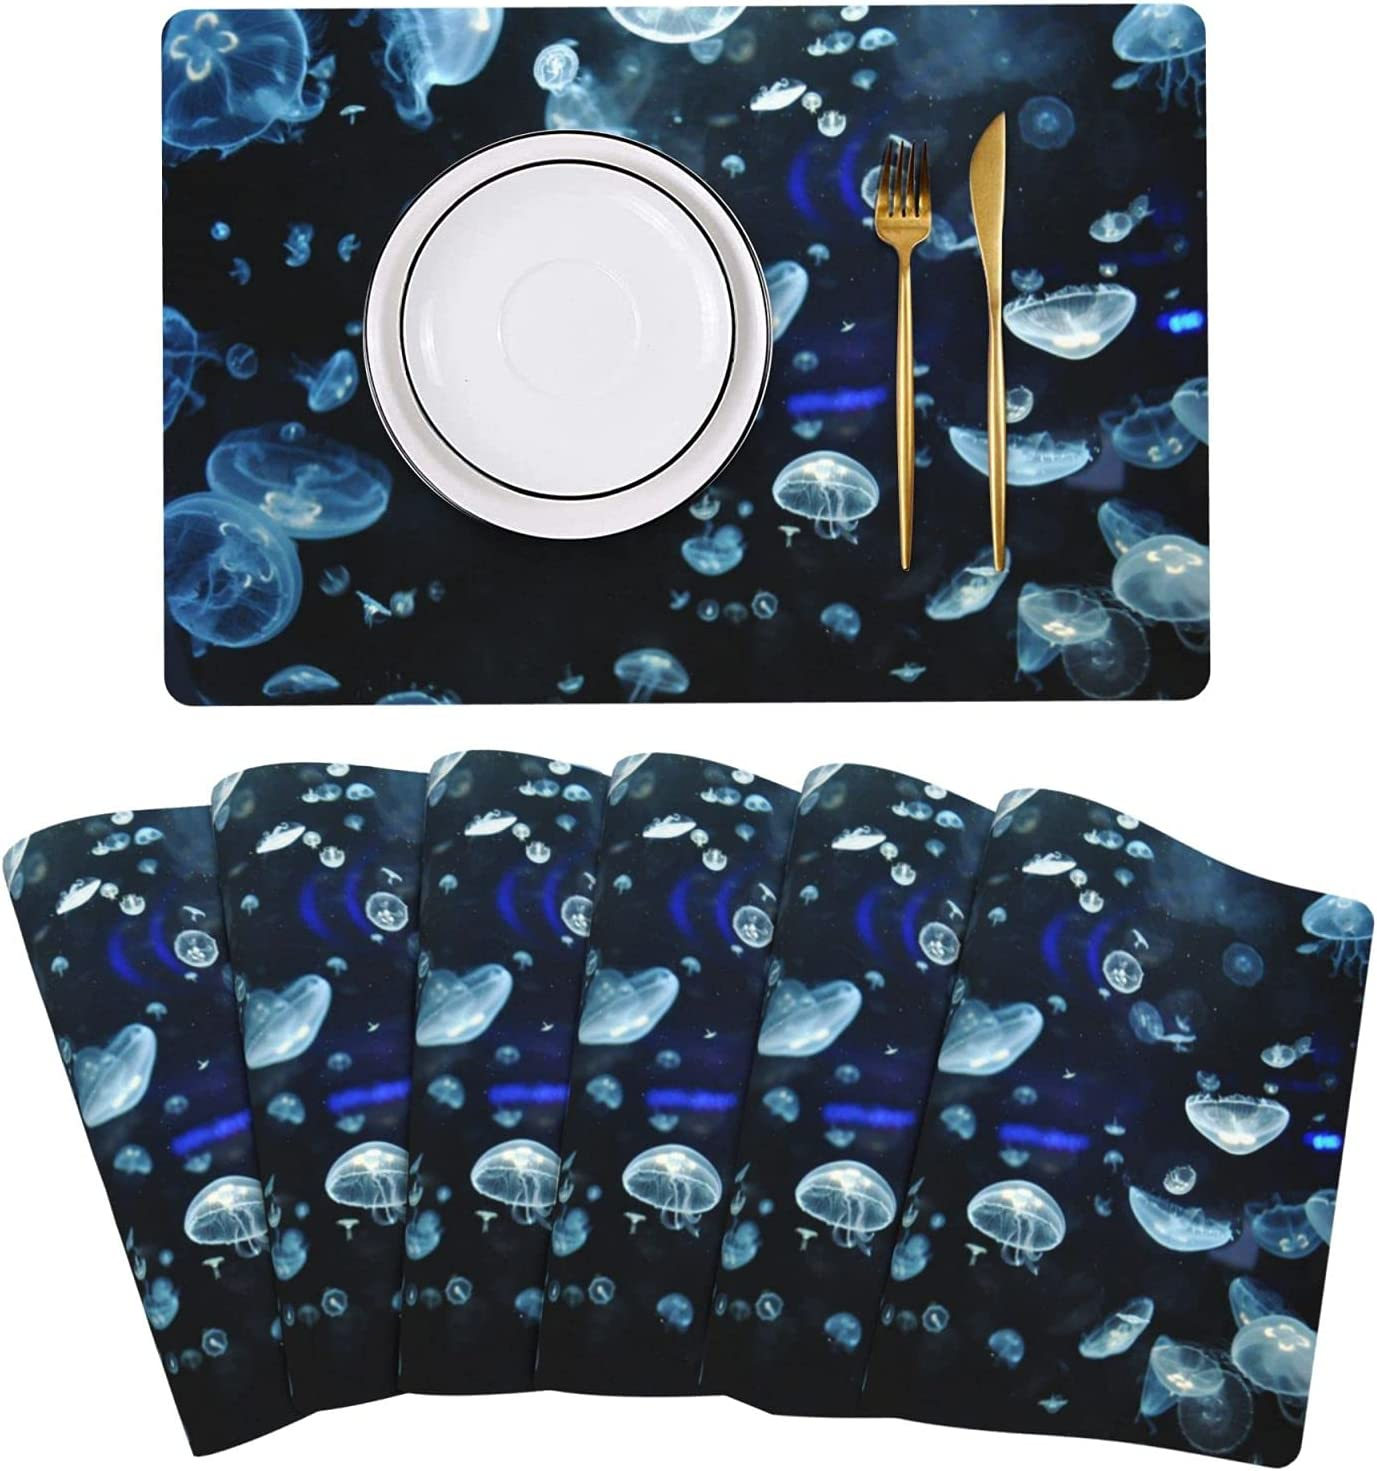 Jellyfish Placemat Leather Table Mats We OFFer at cheap prices Set Easy of Clean Super sale 6 Hea to